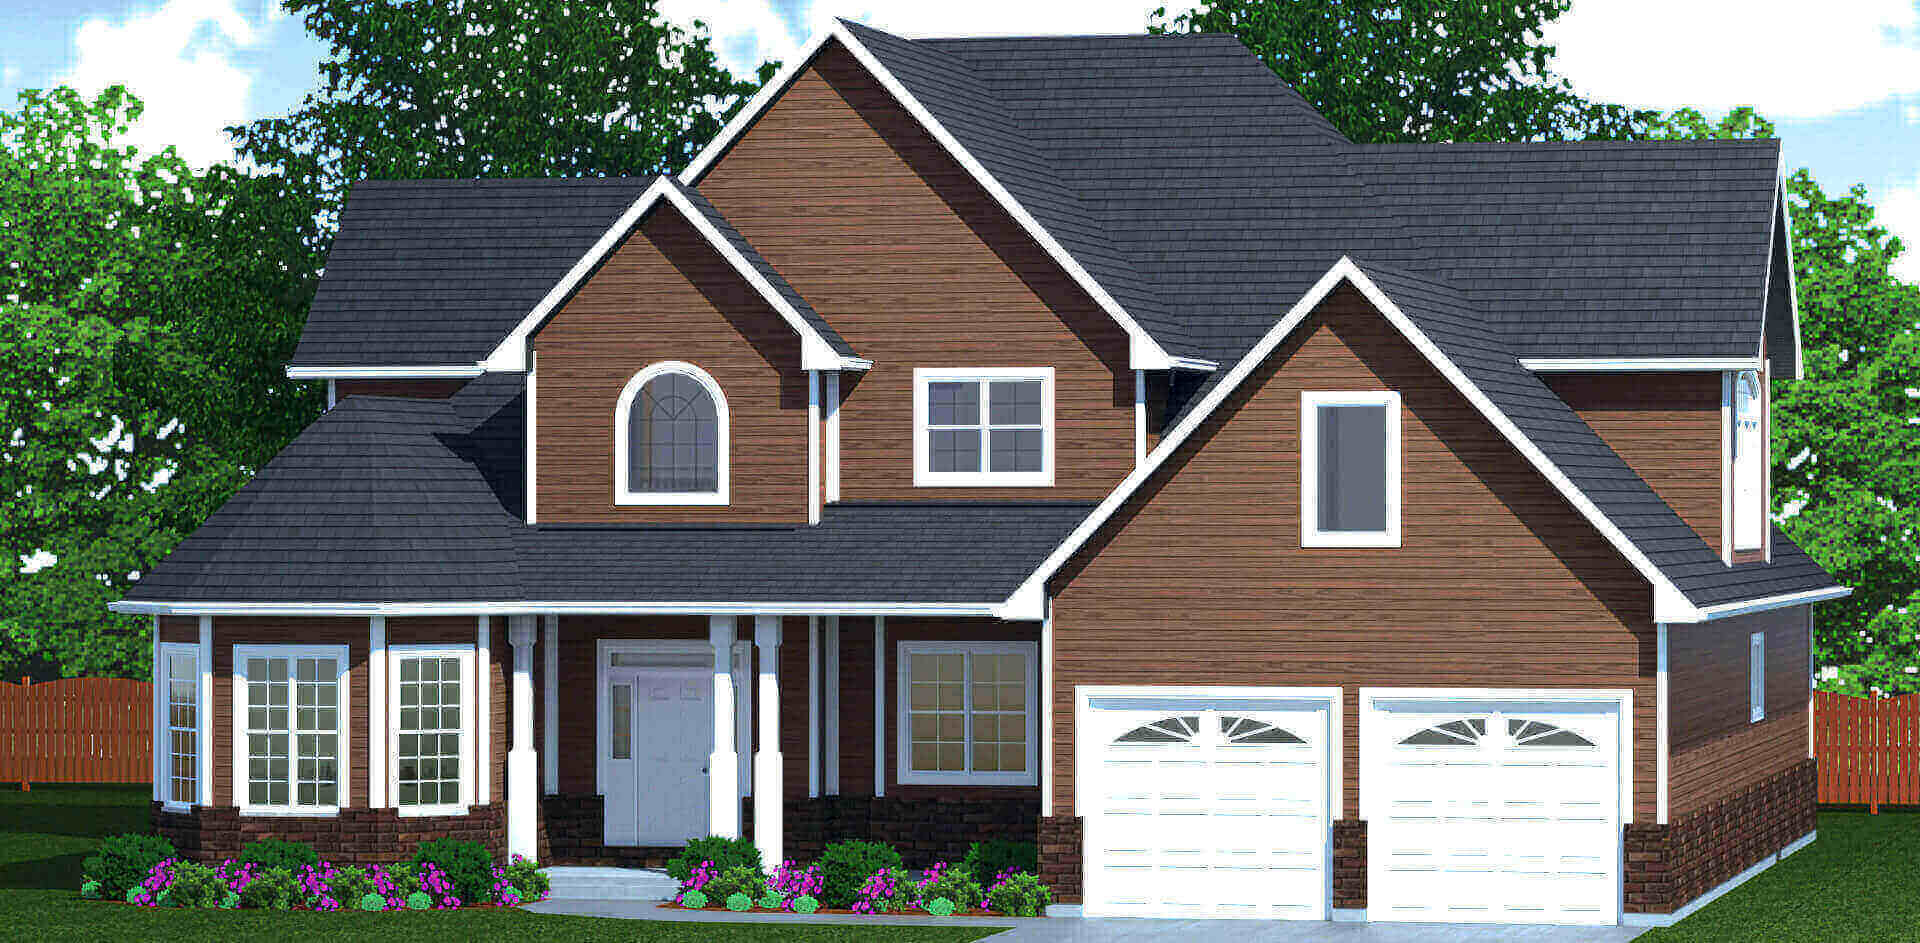 3220 sq.ft. timber mart house 4 bed 3 bath exterior rendering